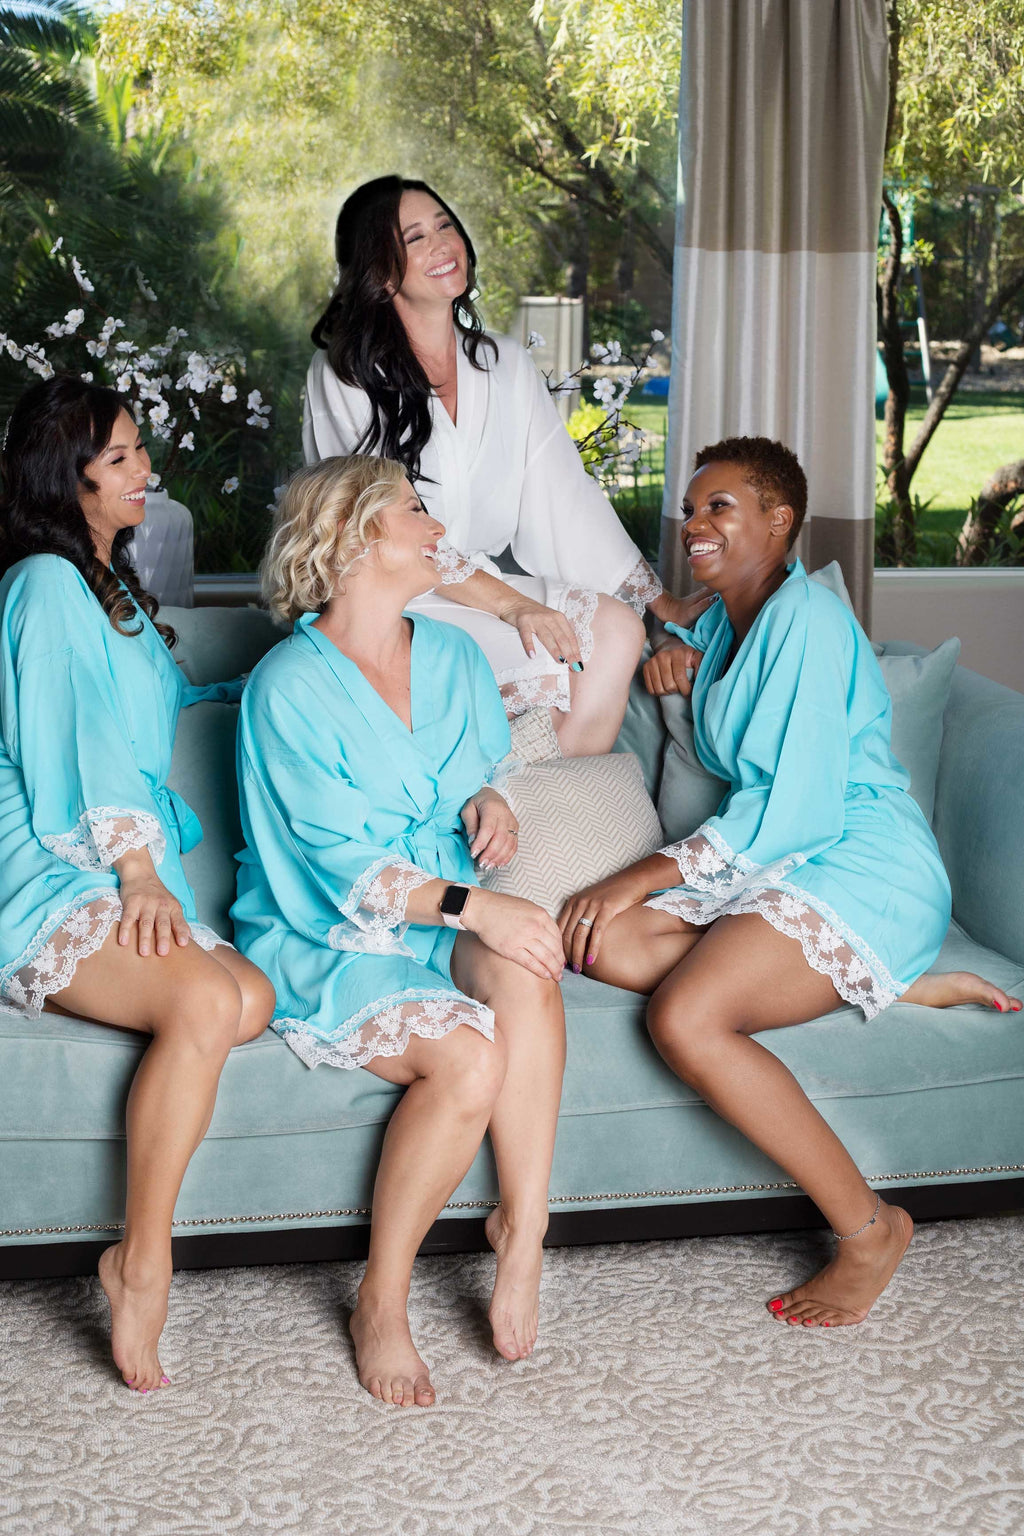 Aqua cotton bridesmaid robes with white lace trim